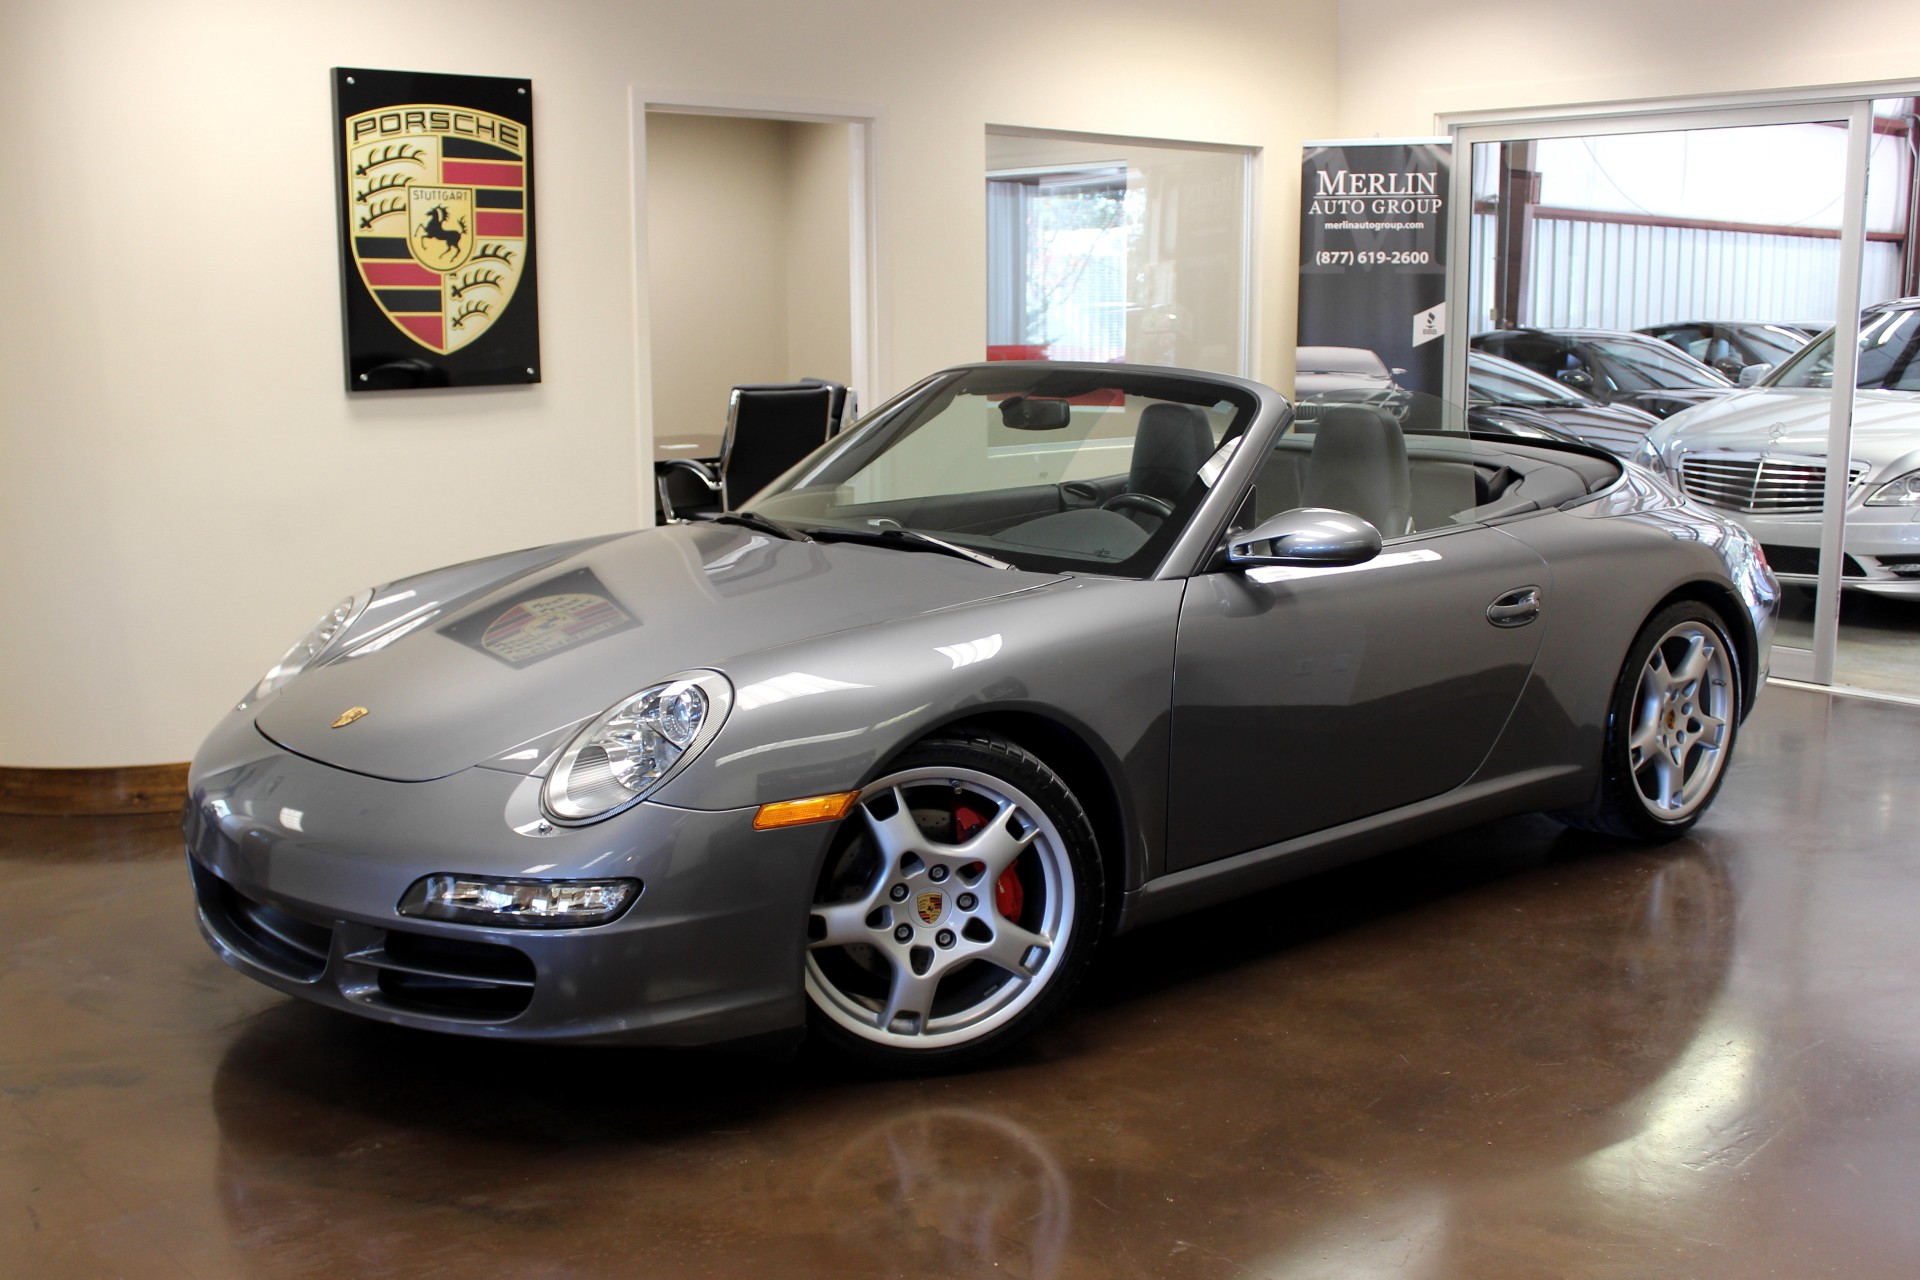 used 2006 porsche 911 stock p2950 ultra luxury car from merlin auto group. Black Bedroom Furniture Sets. Home Design Ideas